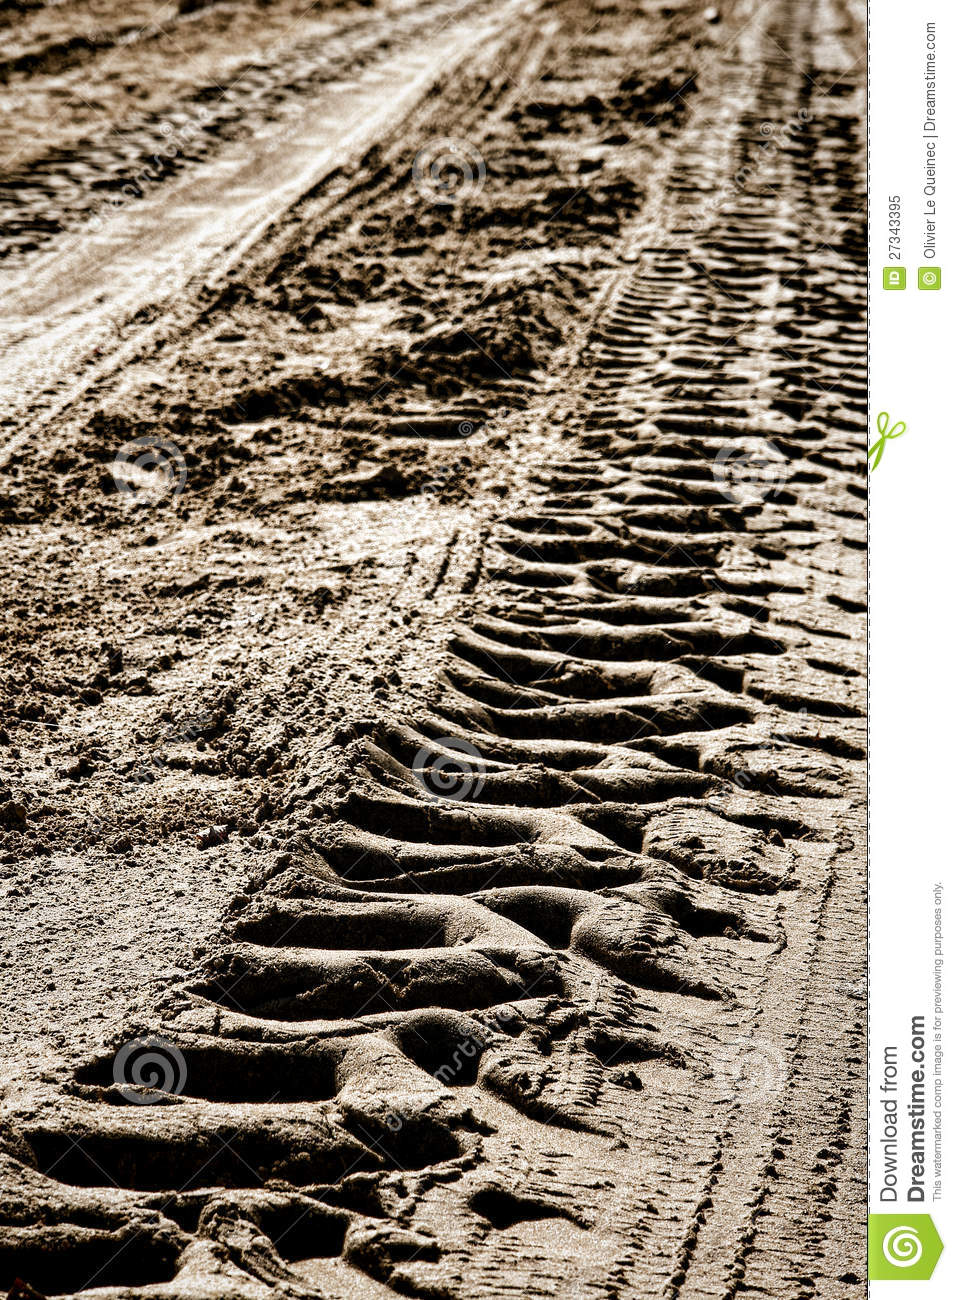 Tractor wheel tire tracks in dry mud on dirt road royalty free stock photo image 27343395 - Tire tread wallpaper ...